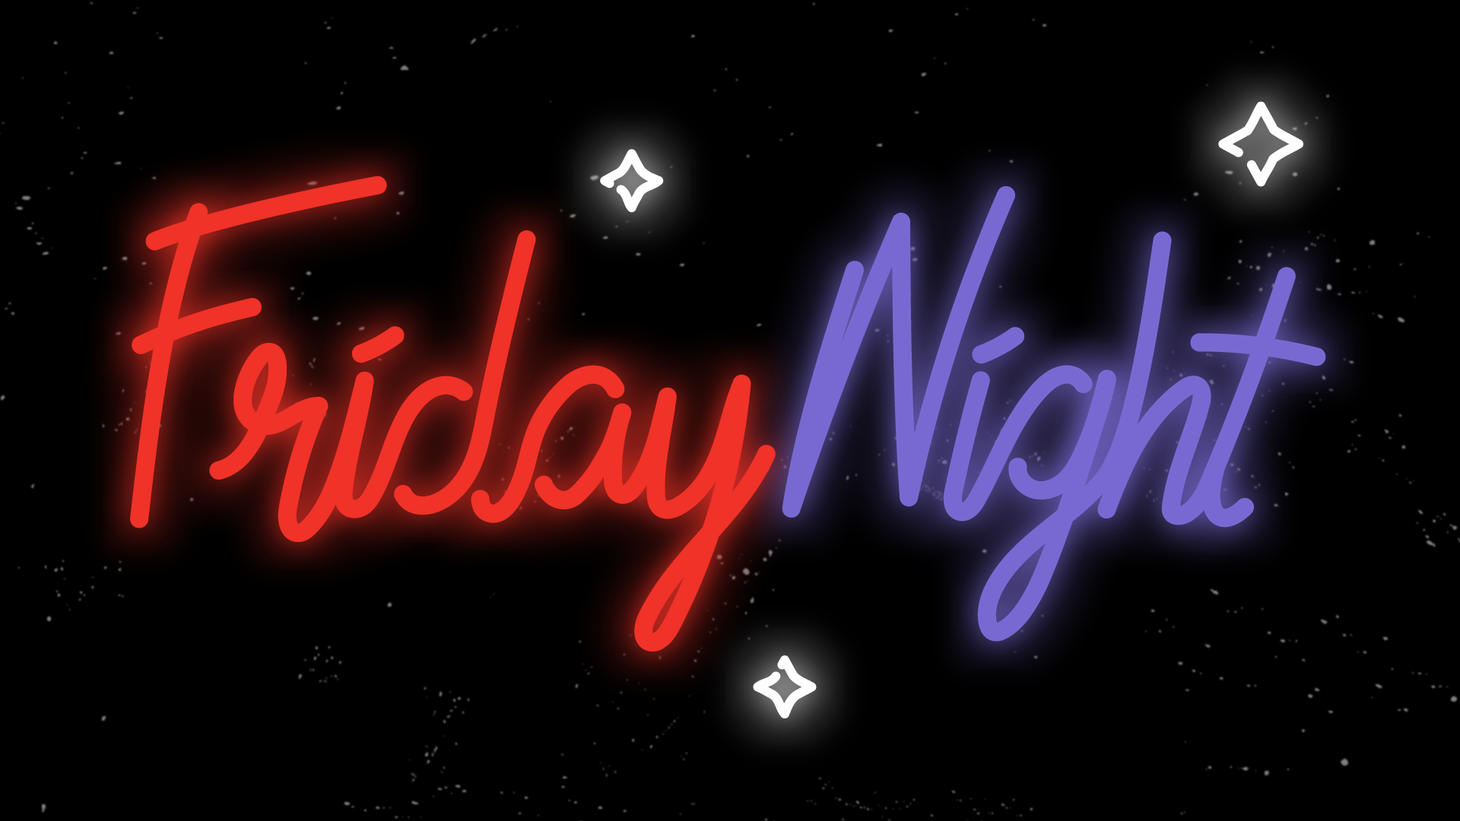 Remember what Friday nights used to feel like? It was freedom, that moment when you get off work, and your time no longer belongs to someone else — the night is yours. Here is an ode, a time capsule, to everyone's favorite night of the week.